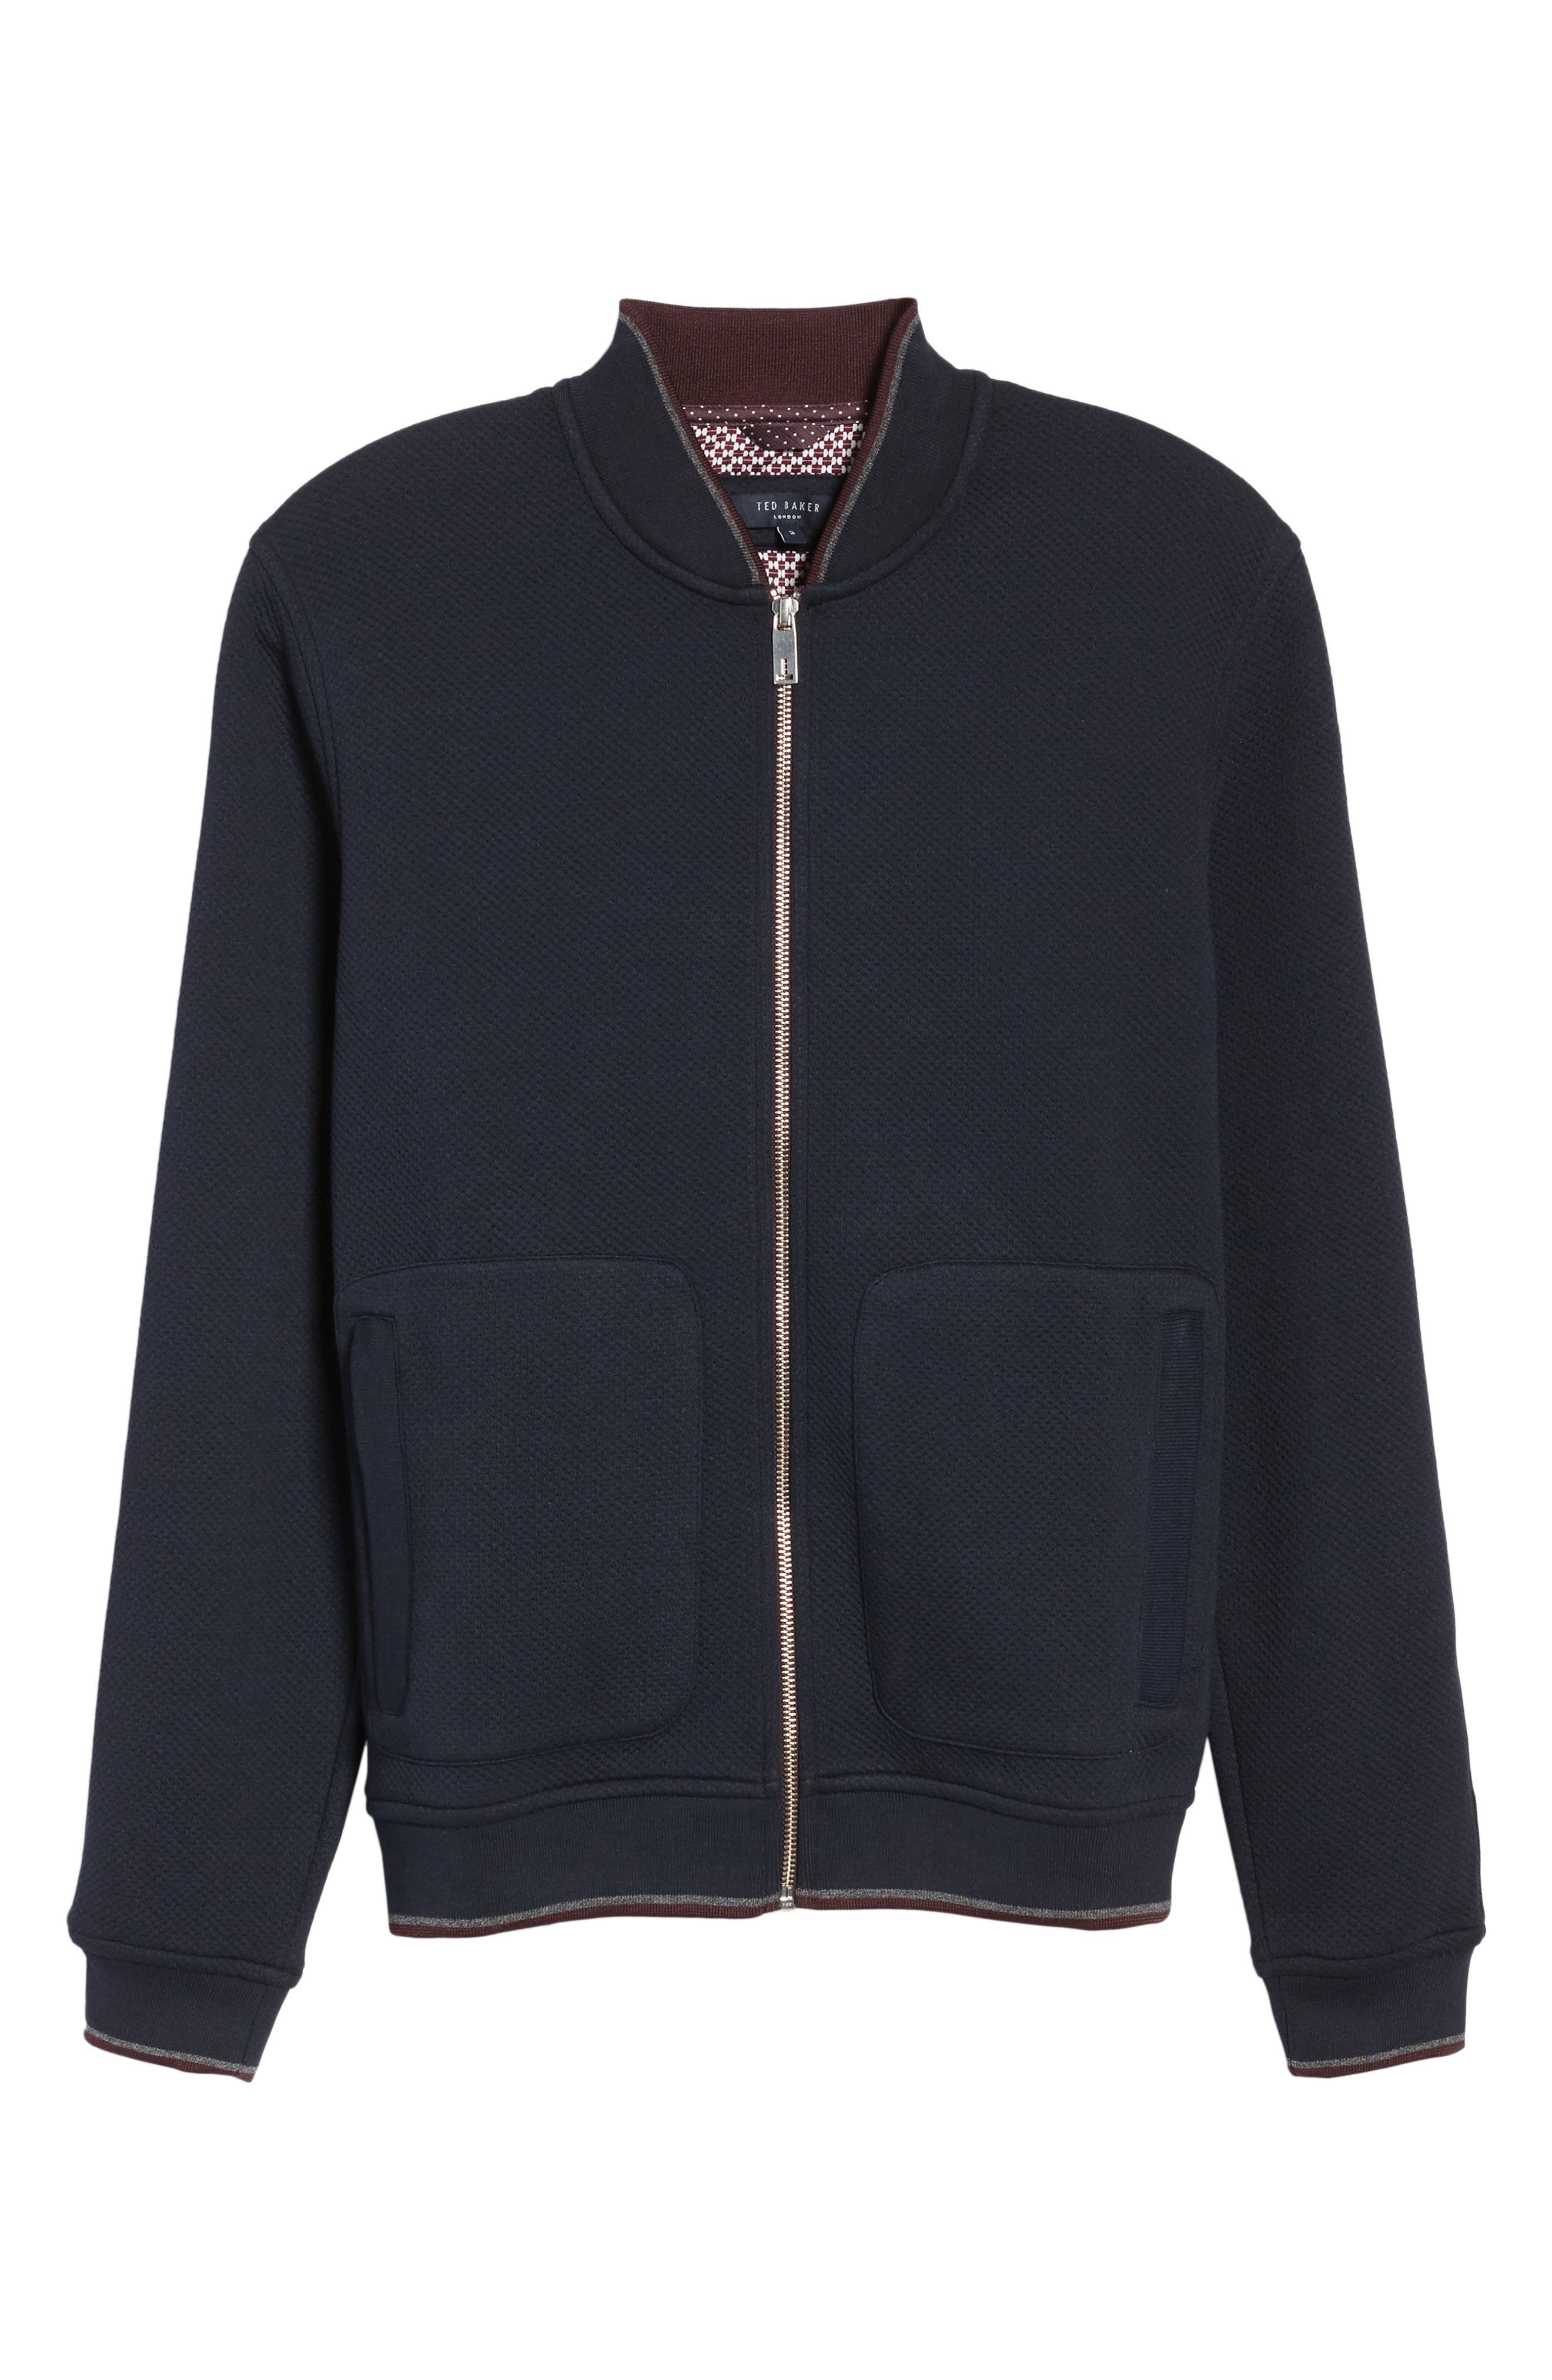 Whatts Trim Fit Textured Bomber Jacket,                             Alternate thumbnail 6, color,                             Navy